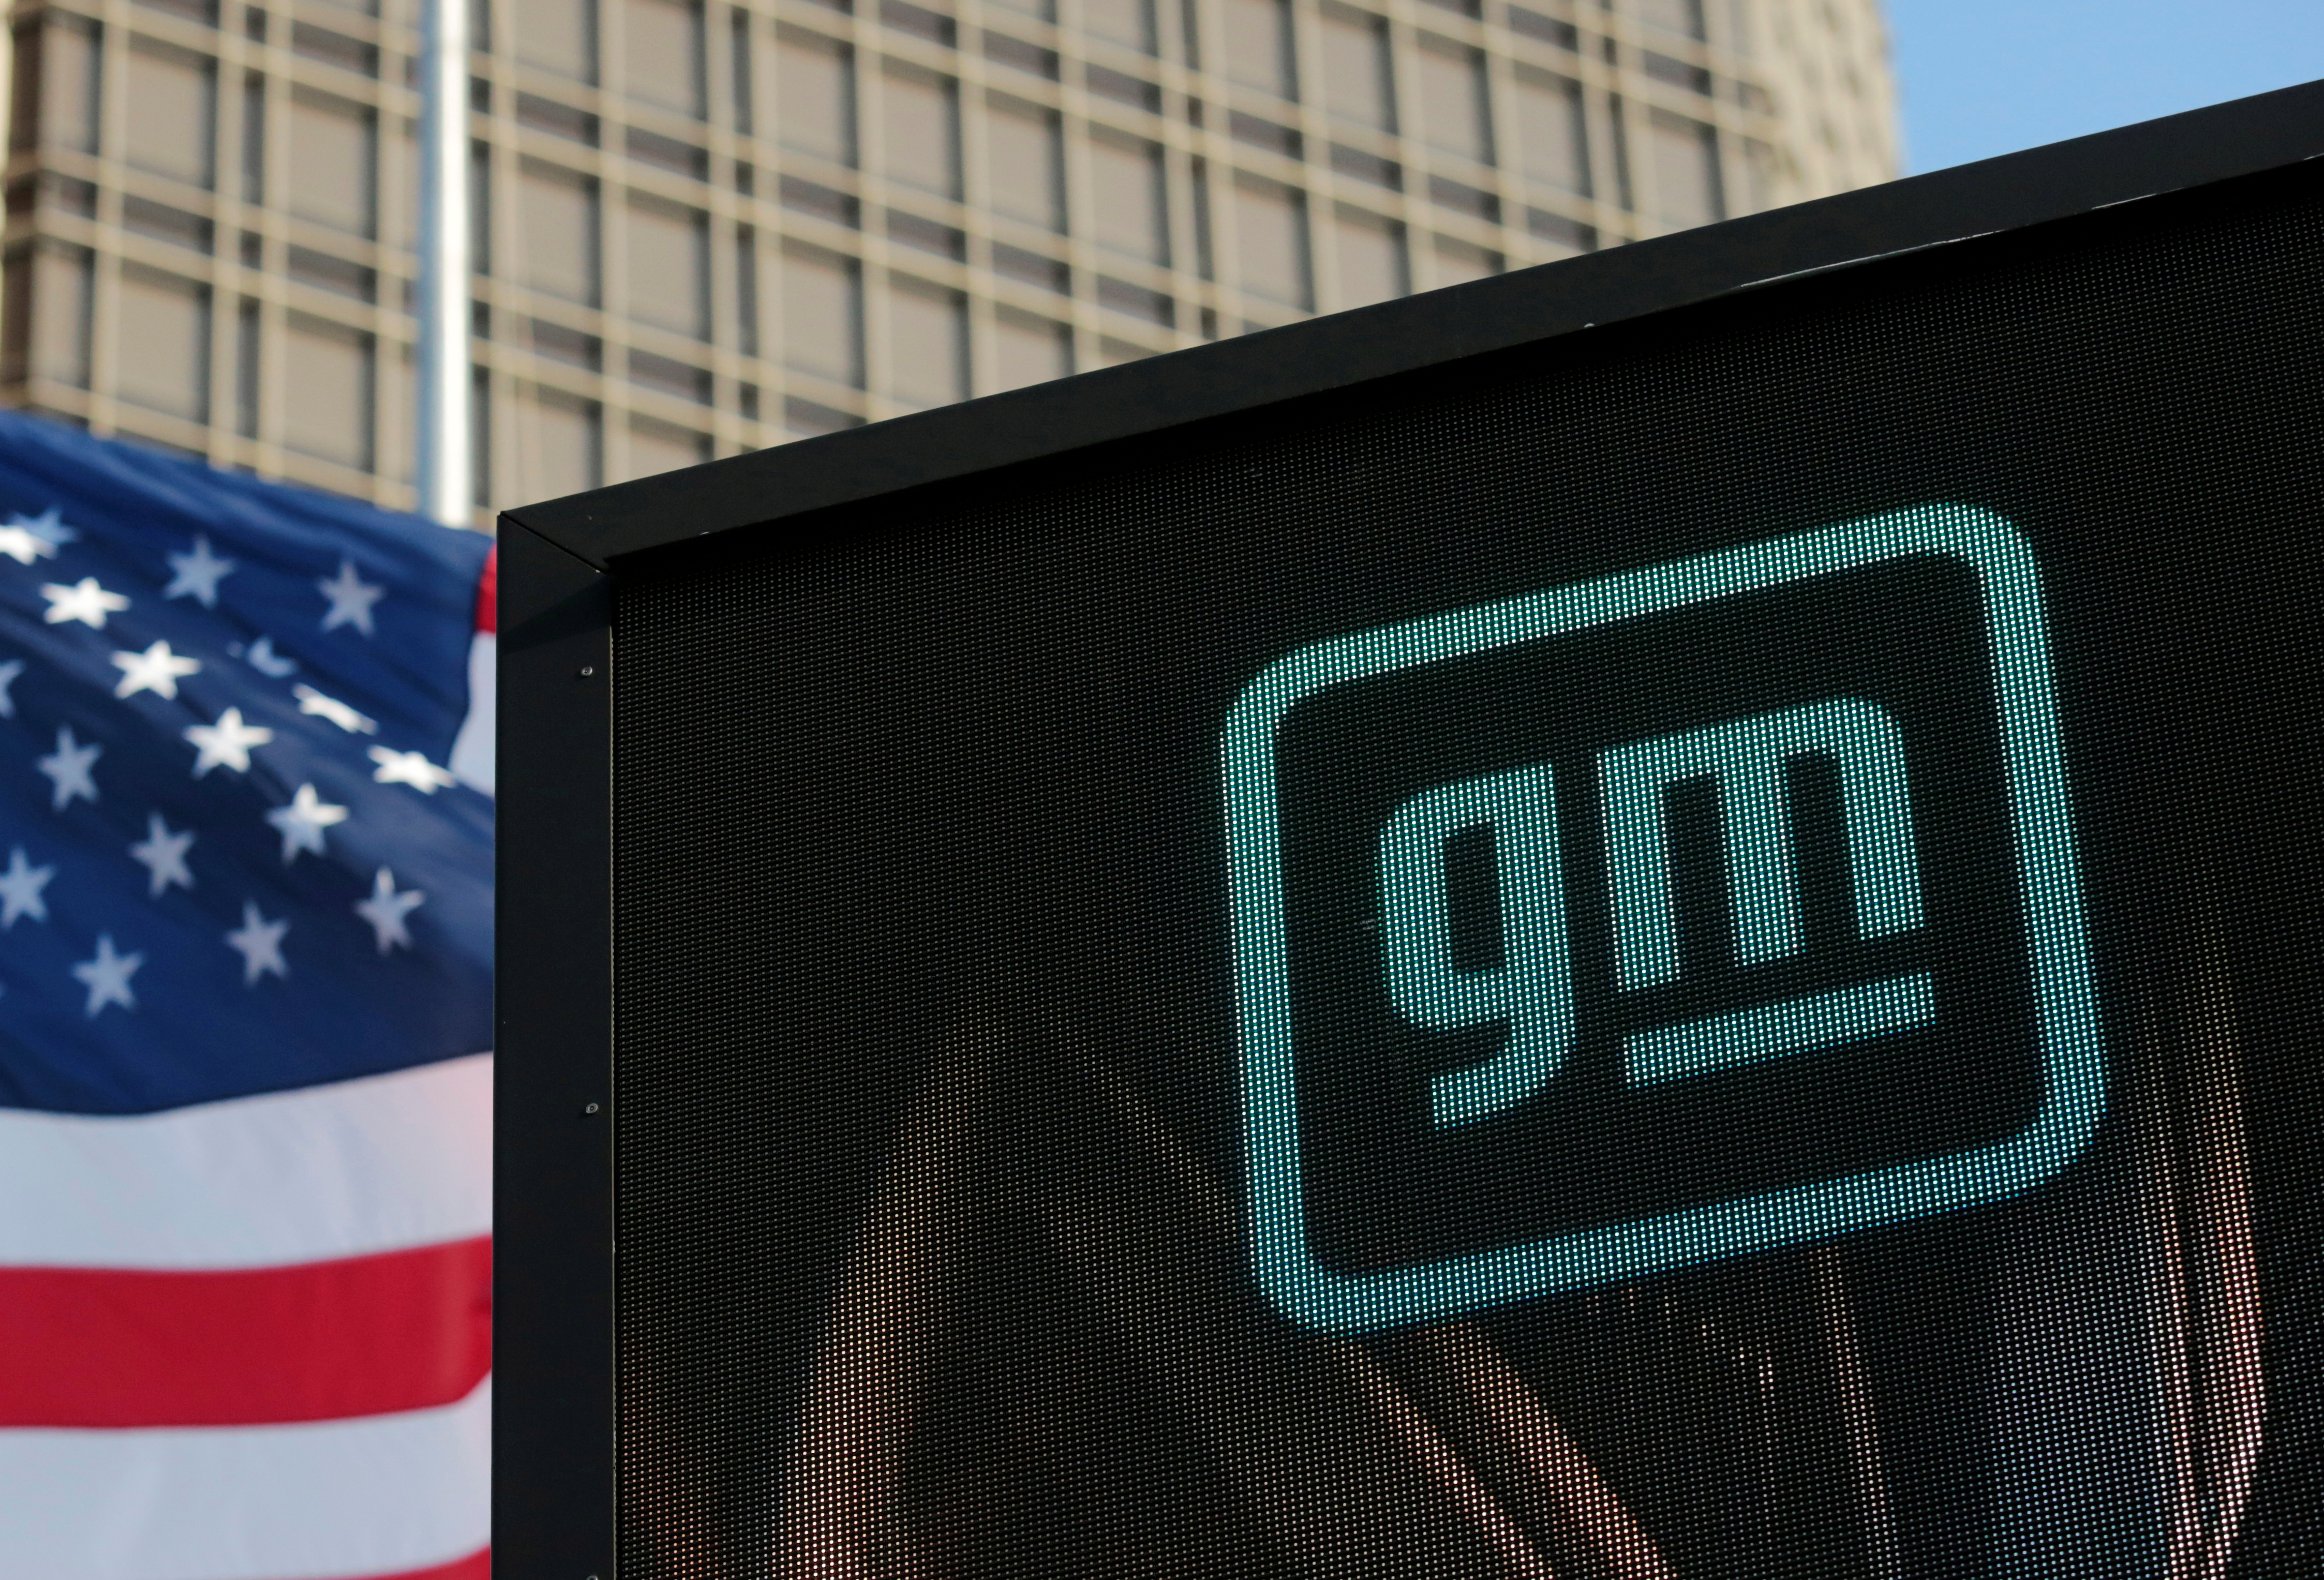 The new GM logo is seen on the facade of the General Motors headquarters in Detroit, Michigan, U.S., March 16, 2021. Picture taken March 16, 2021.  REUTERS/Rebecca Cook/Files